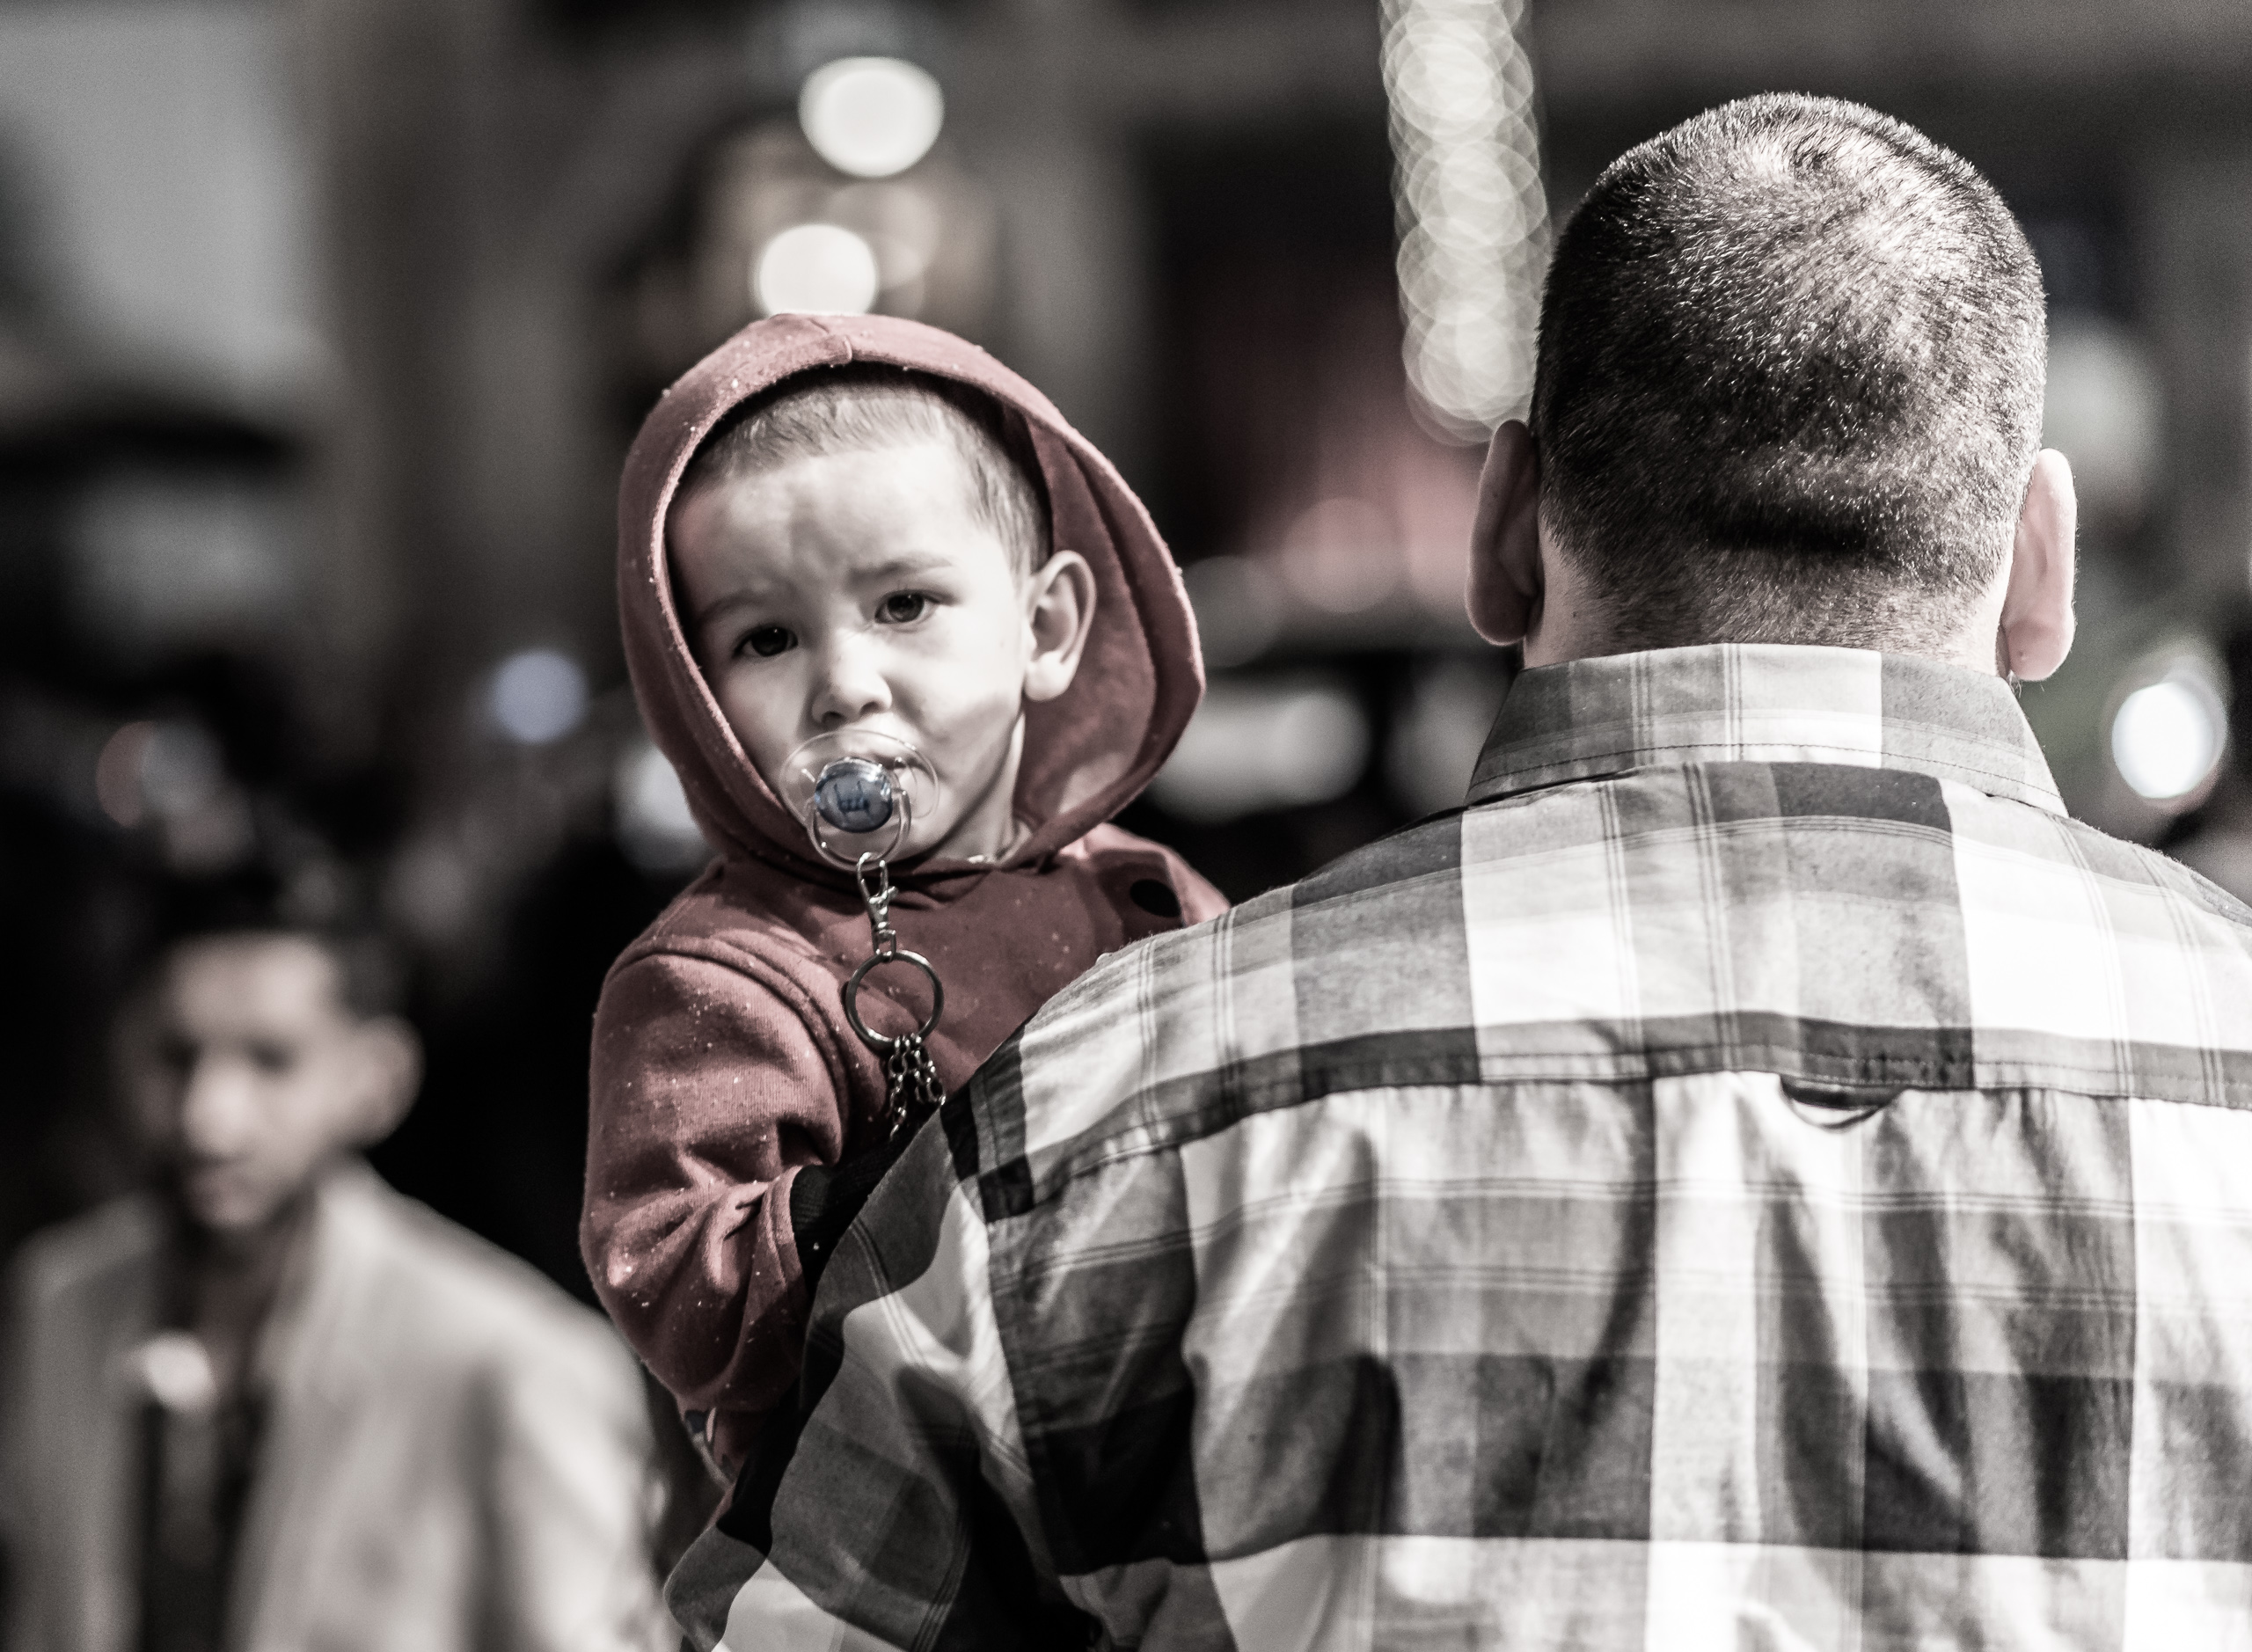 a young boy with a pacifier in his mouth and being carried down the street by his dad